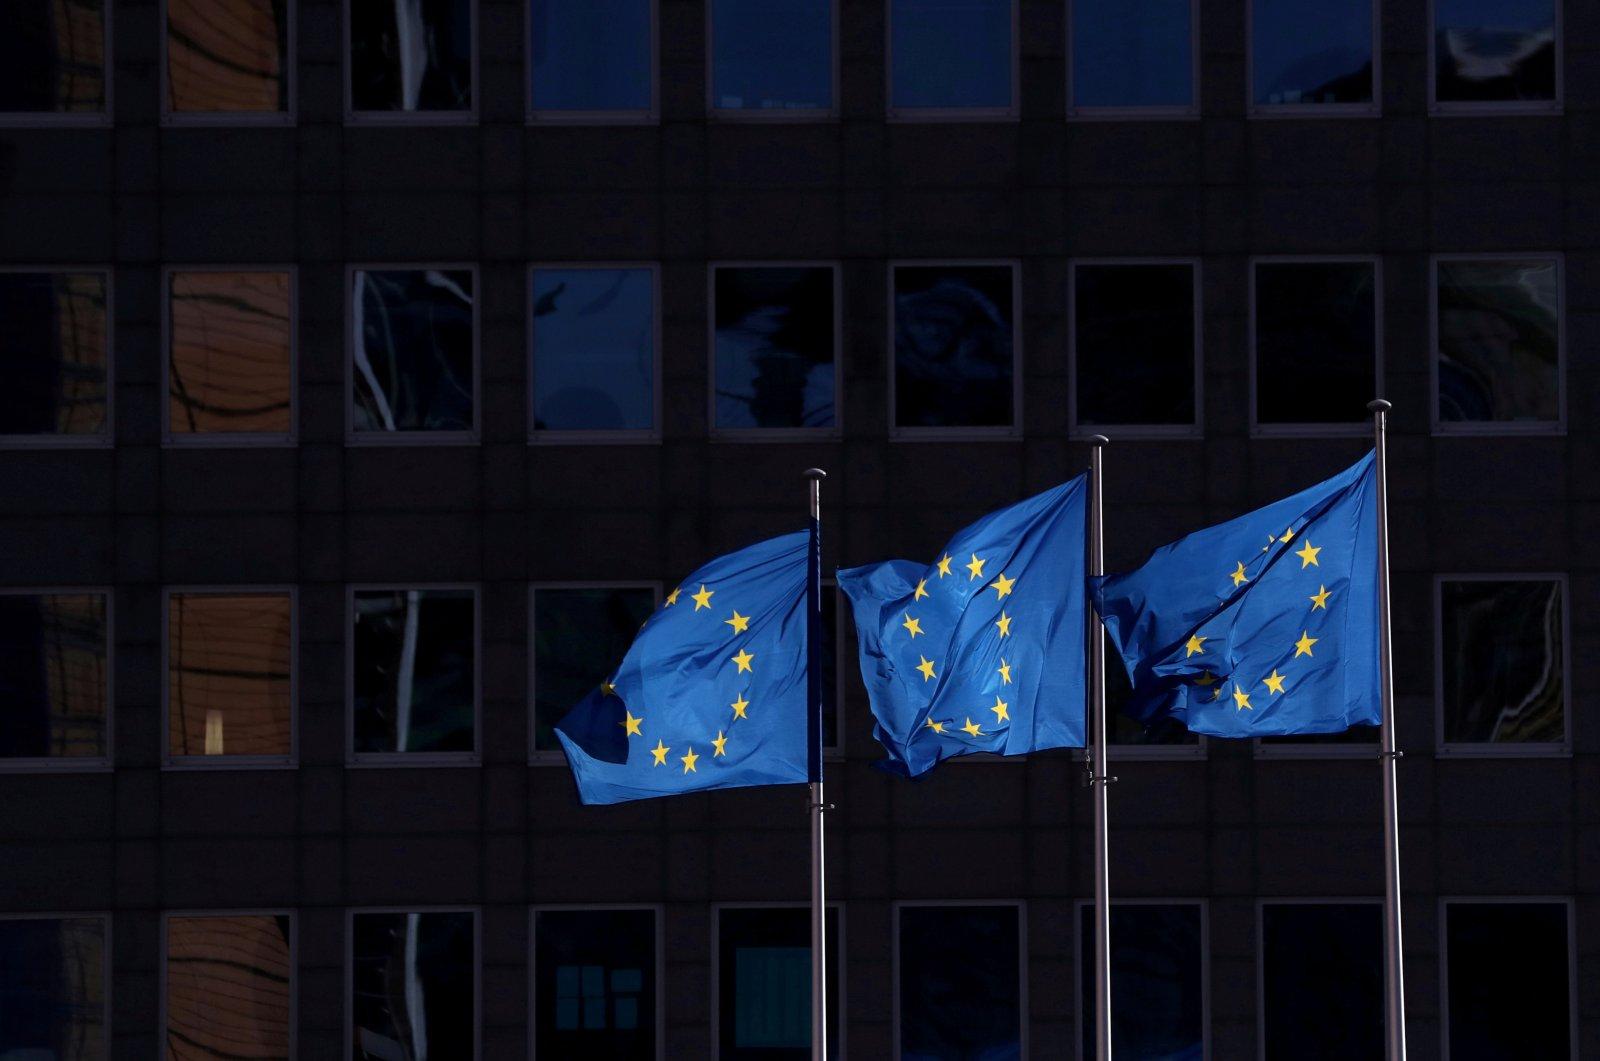 European Union flags fly outside the European Commission headquarters, Brussels, Feb. 19, 2020. (REUTERS Photo)